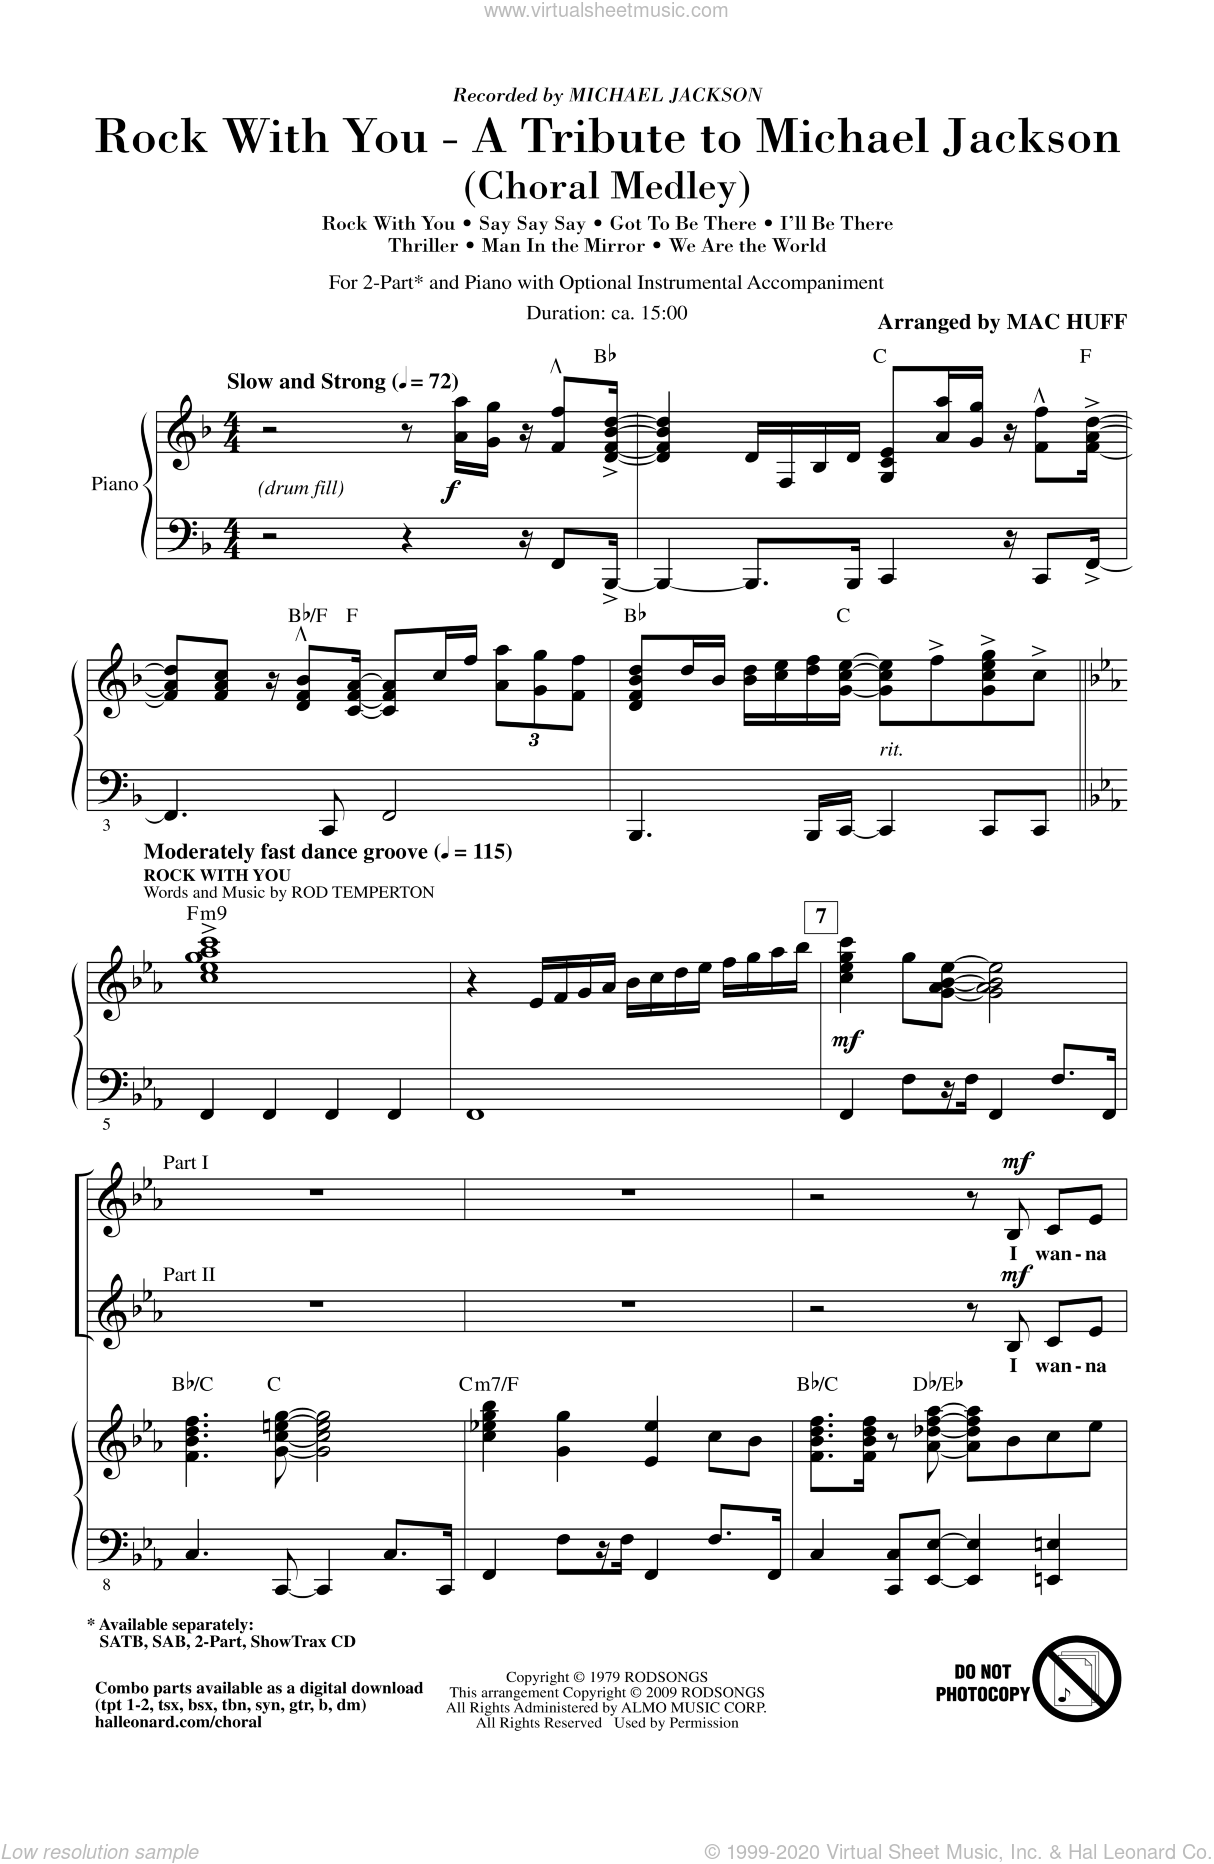 Rock With You - A Tribute to Michael Jackson (Medley) sheet music for choir and piano (duets) by Rod Temperton, Mac Huff and Michael Jackson. Score Image Preview.